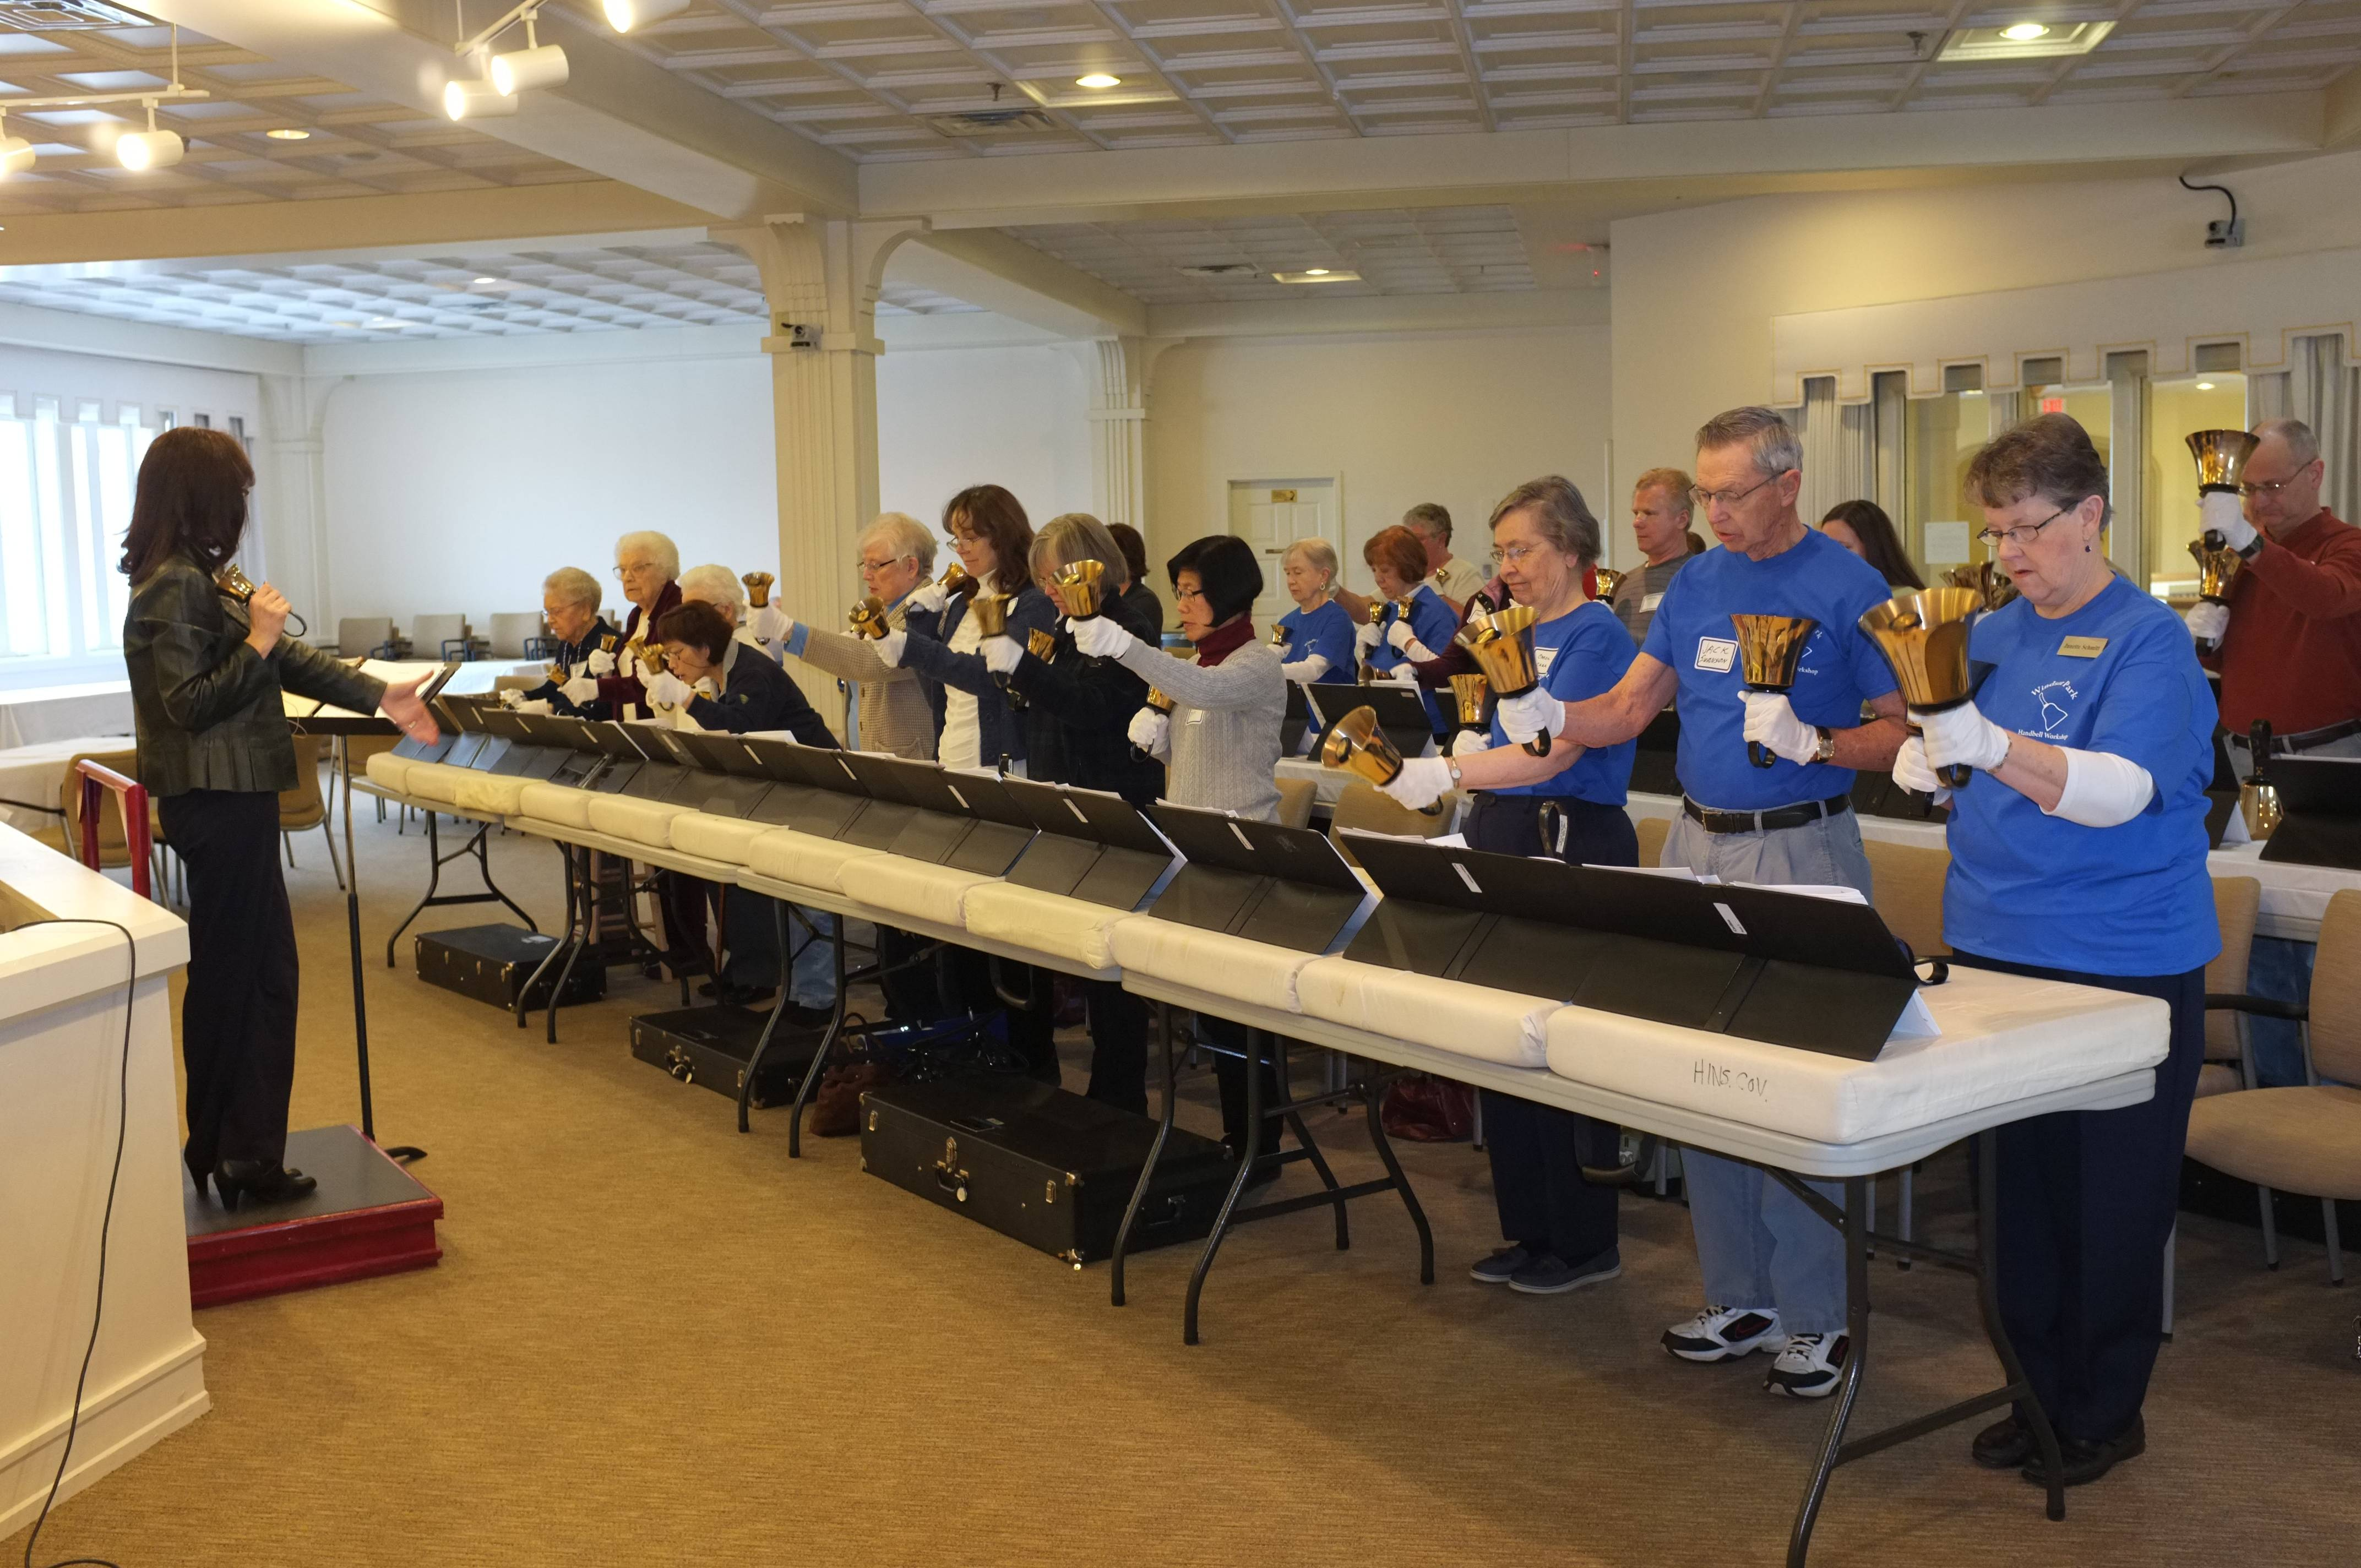 KC Congdon leads handbell ringers at a workshop held on Saturday, March 2. The event was held at Windsor Park, A Covenant Retirement Community in Carol Stream, and drew approximately 30 participants.